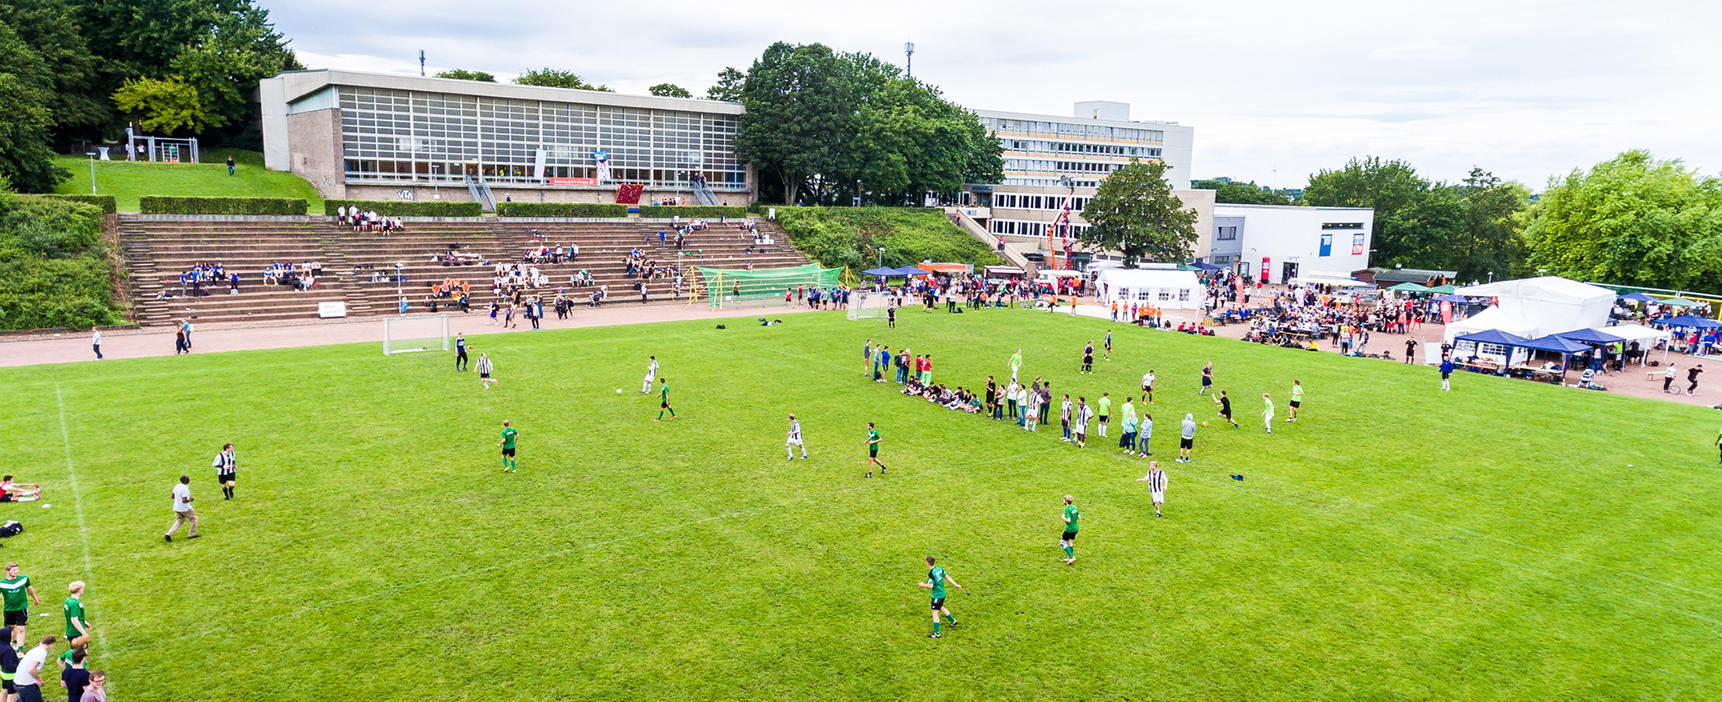 Aerial view of a soccer tournament